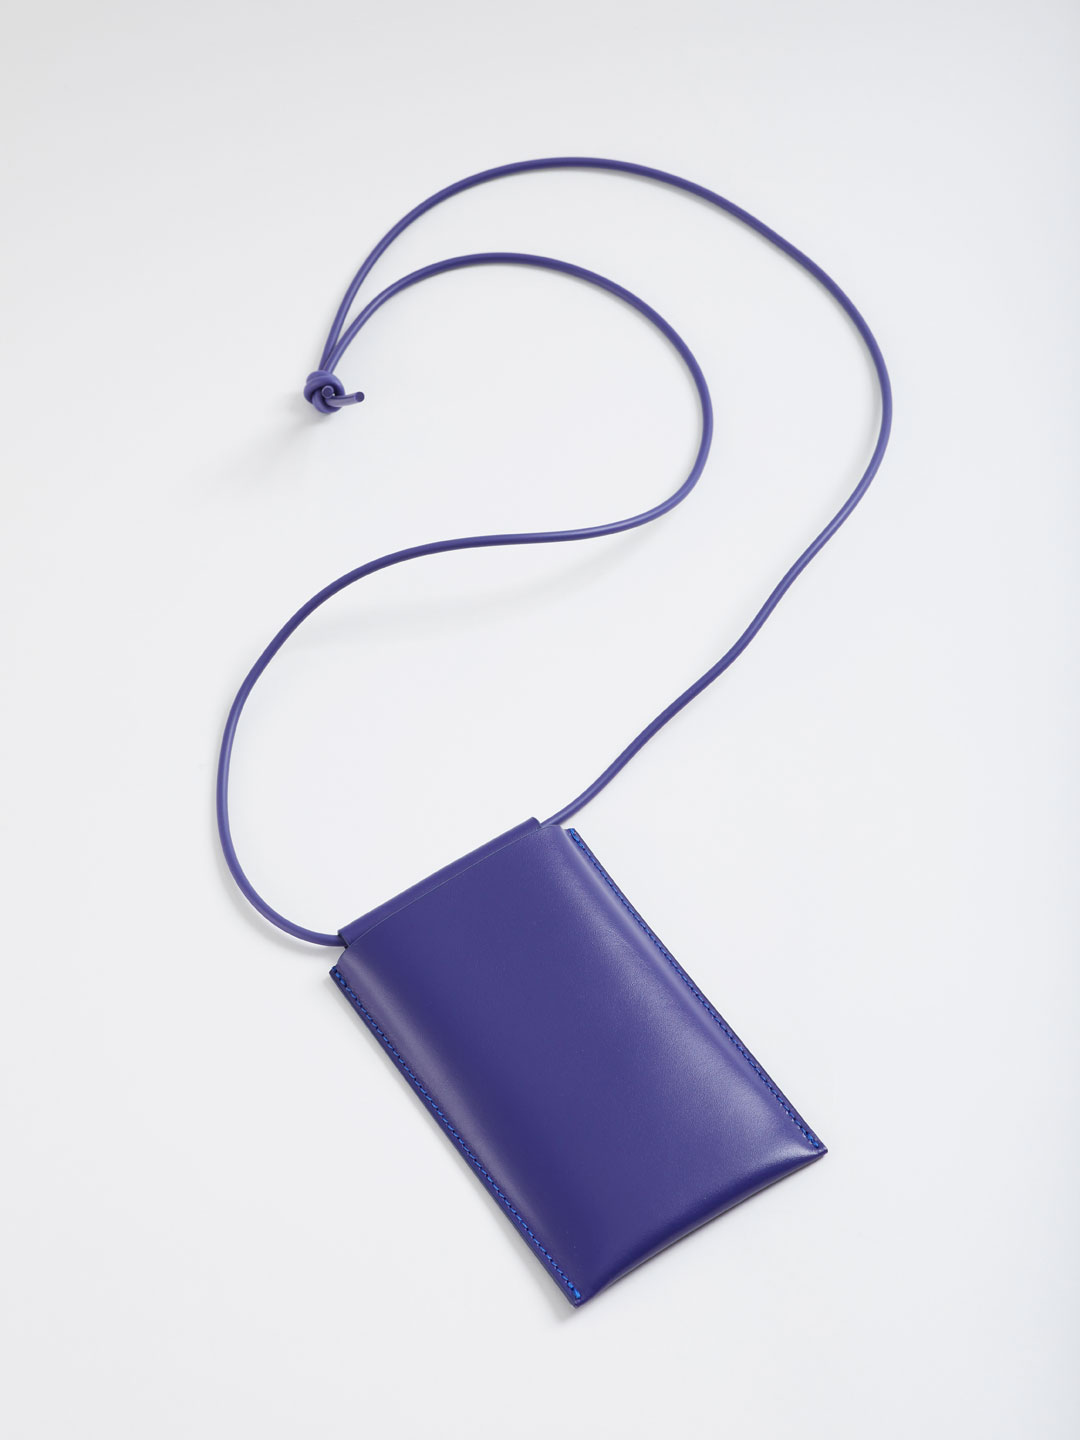 Iphone Sling  - Blue